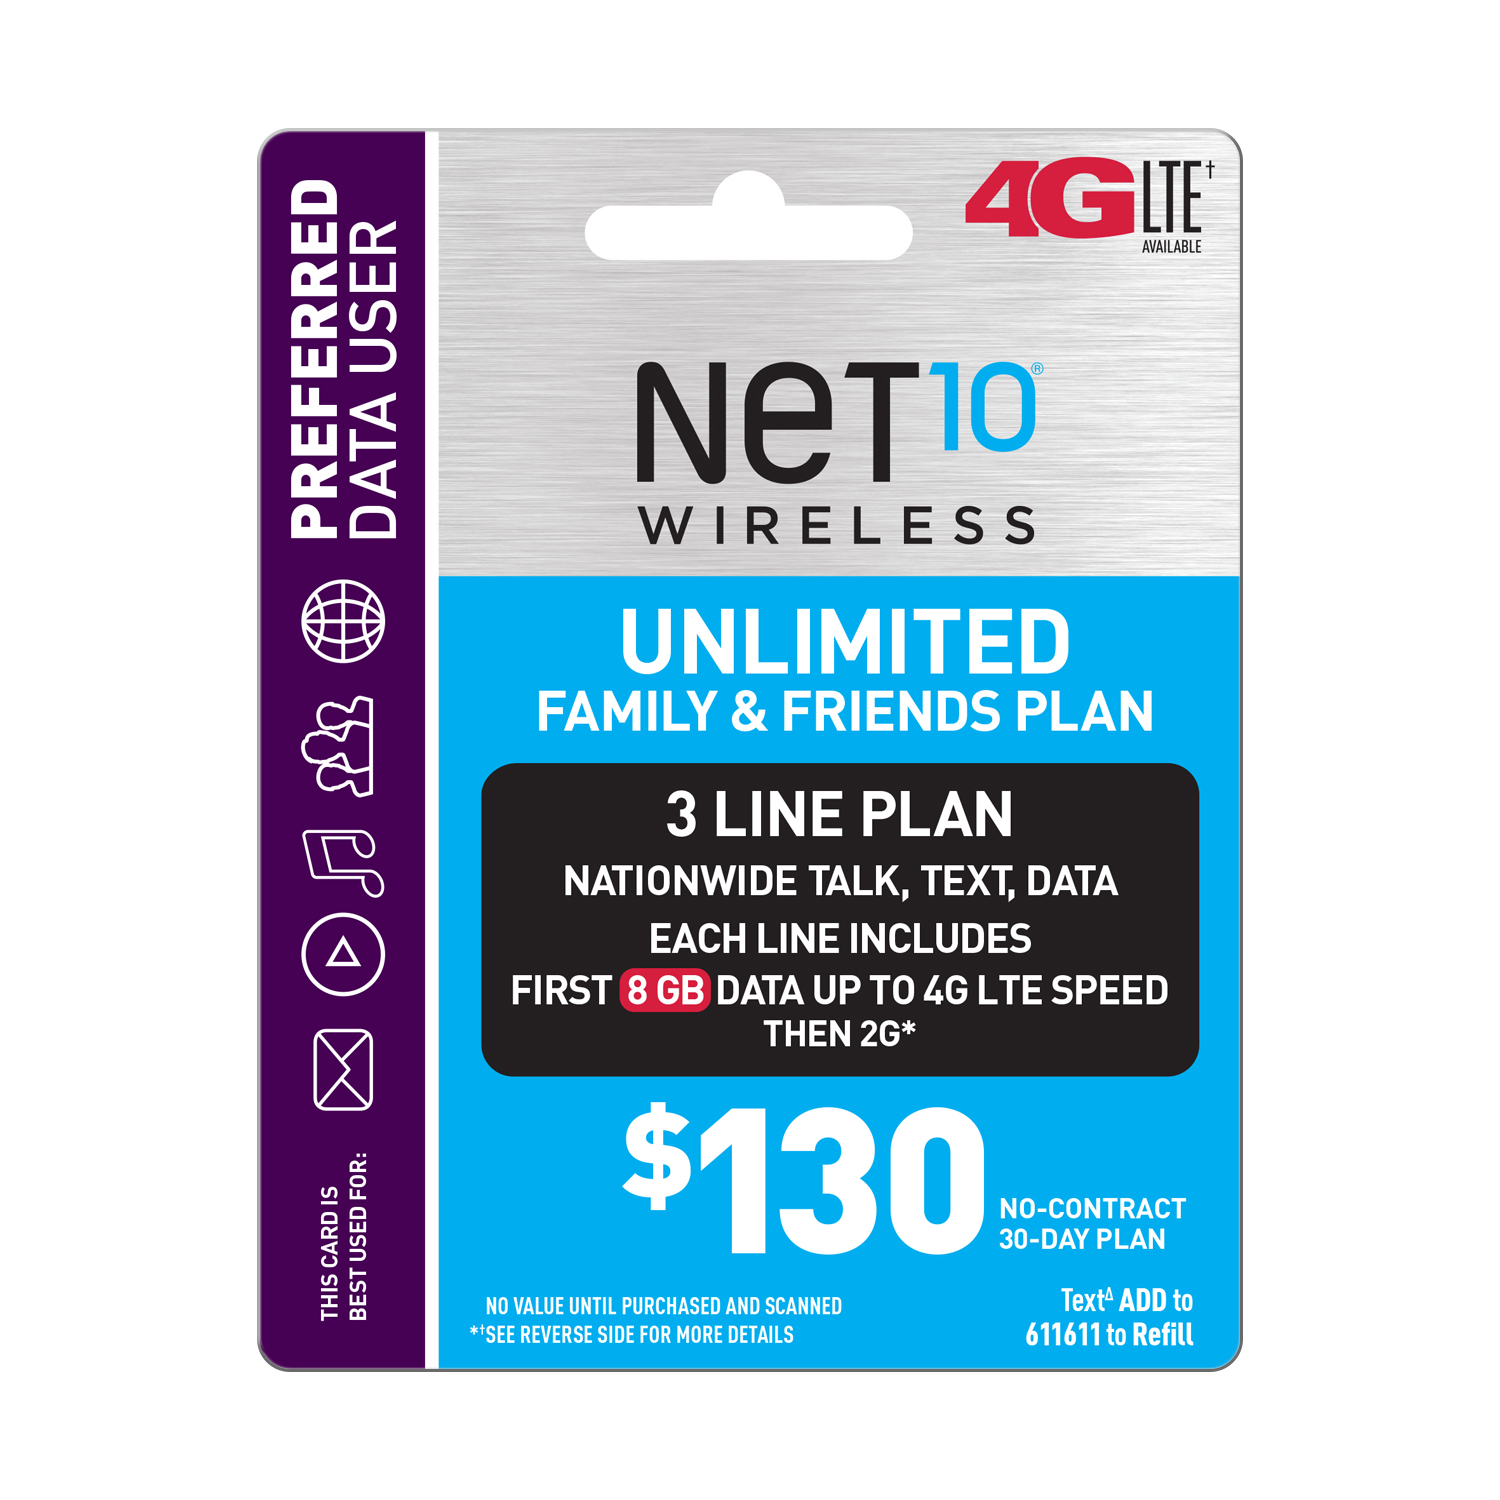 Net10 $130 Unlimited Family & Friends Plan for 3 Lines (8GB of data per line at high speeds, then 2G*) (Email Delivery)